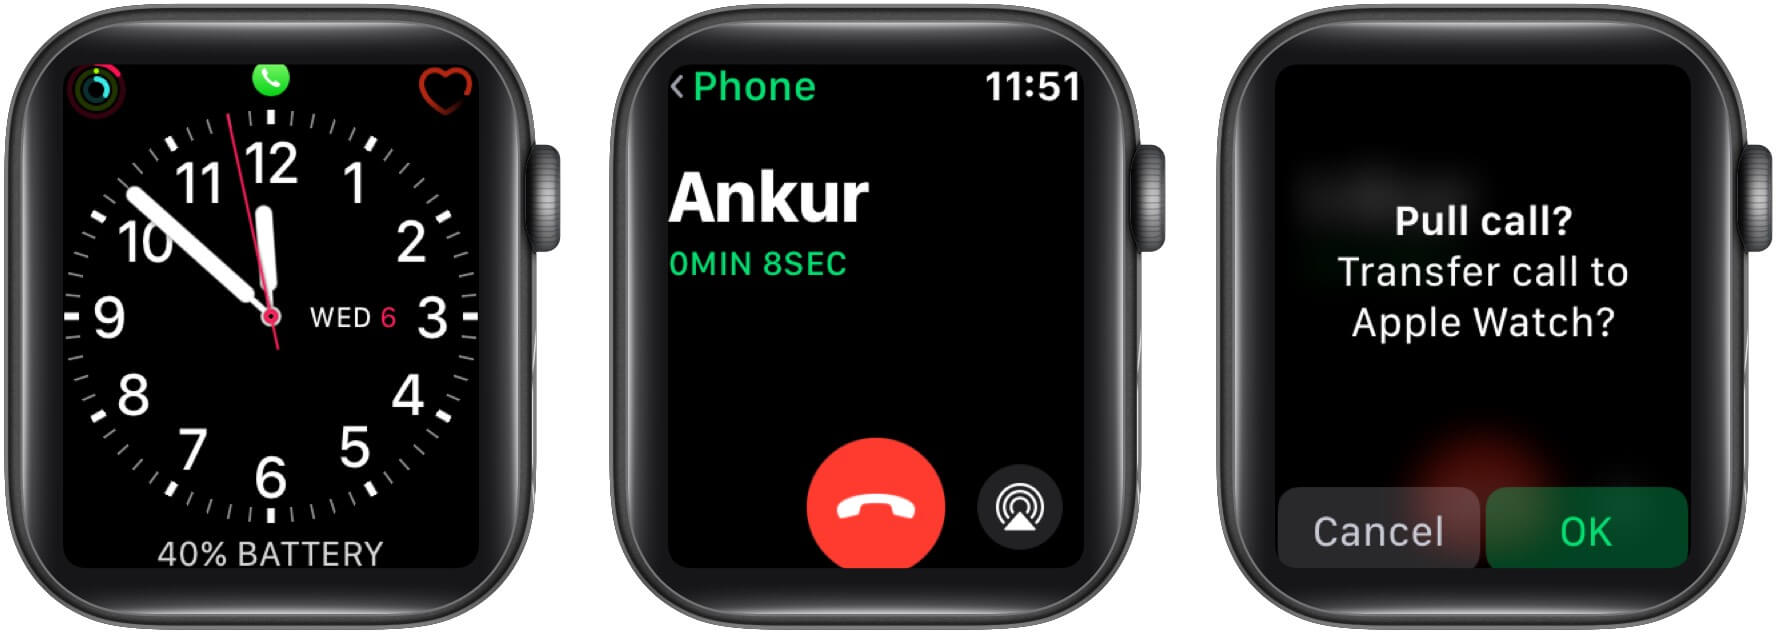 Transfer FaceTime call from iPhone to Apple Watch